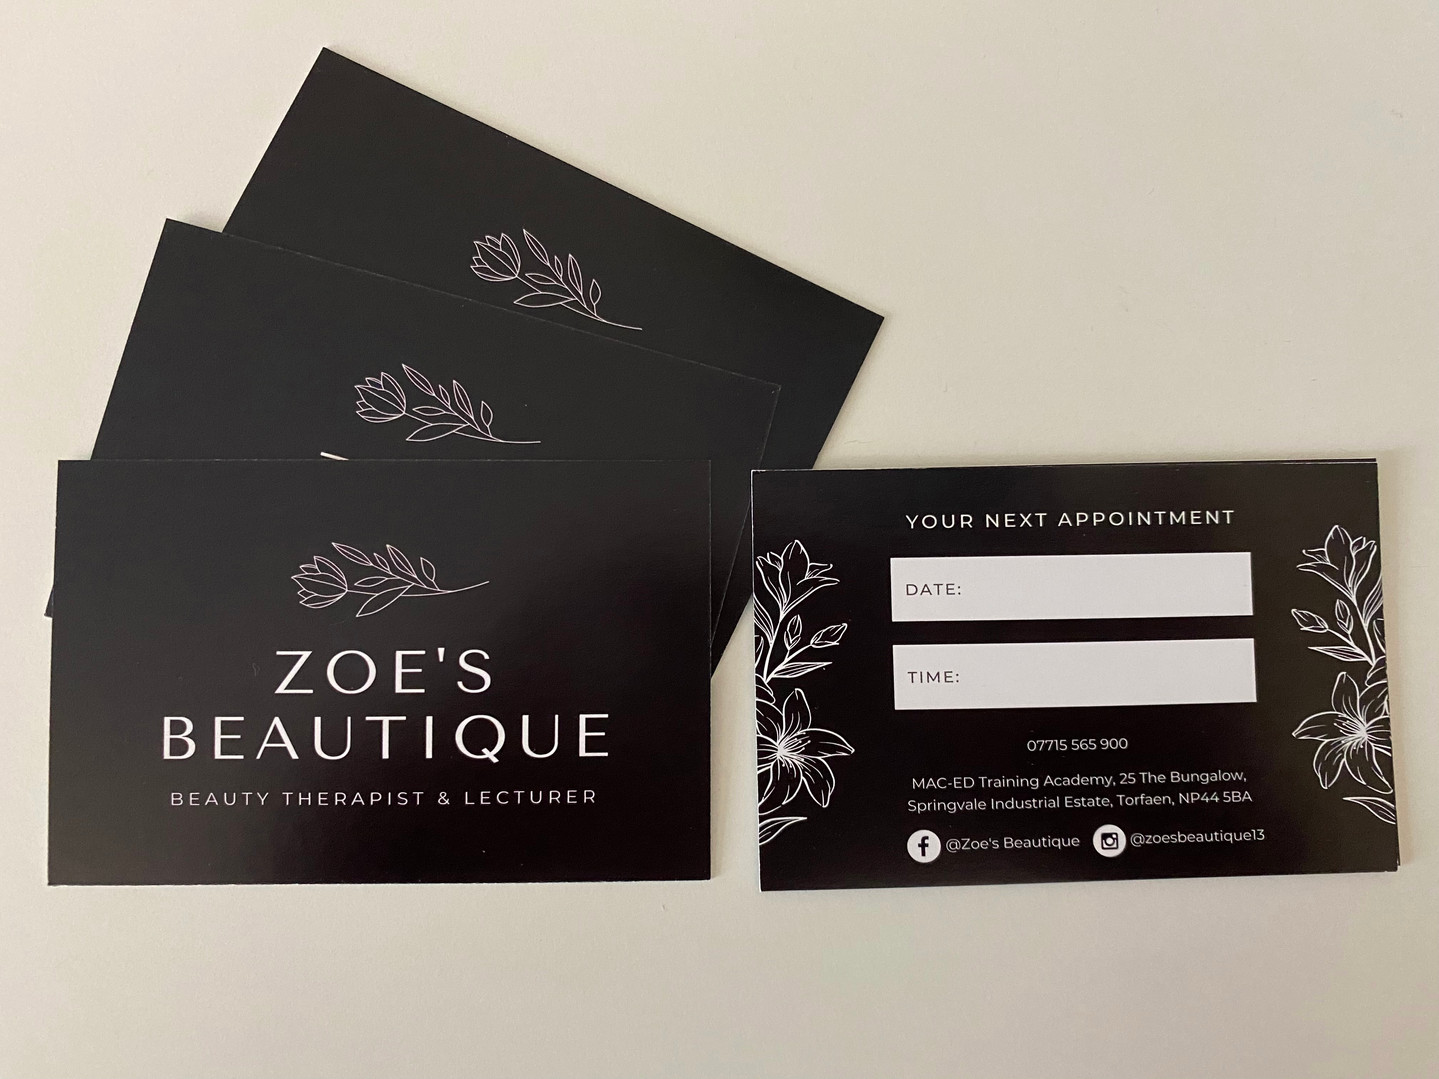 Zoe's Beautique Appointment Cards